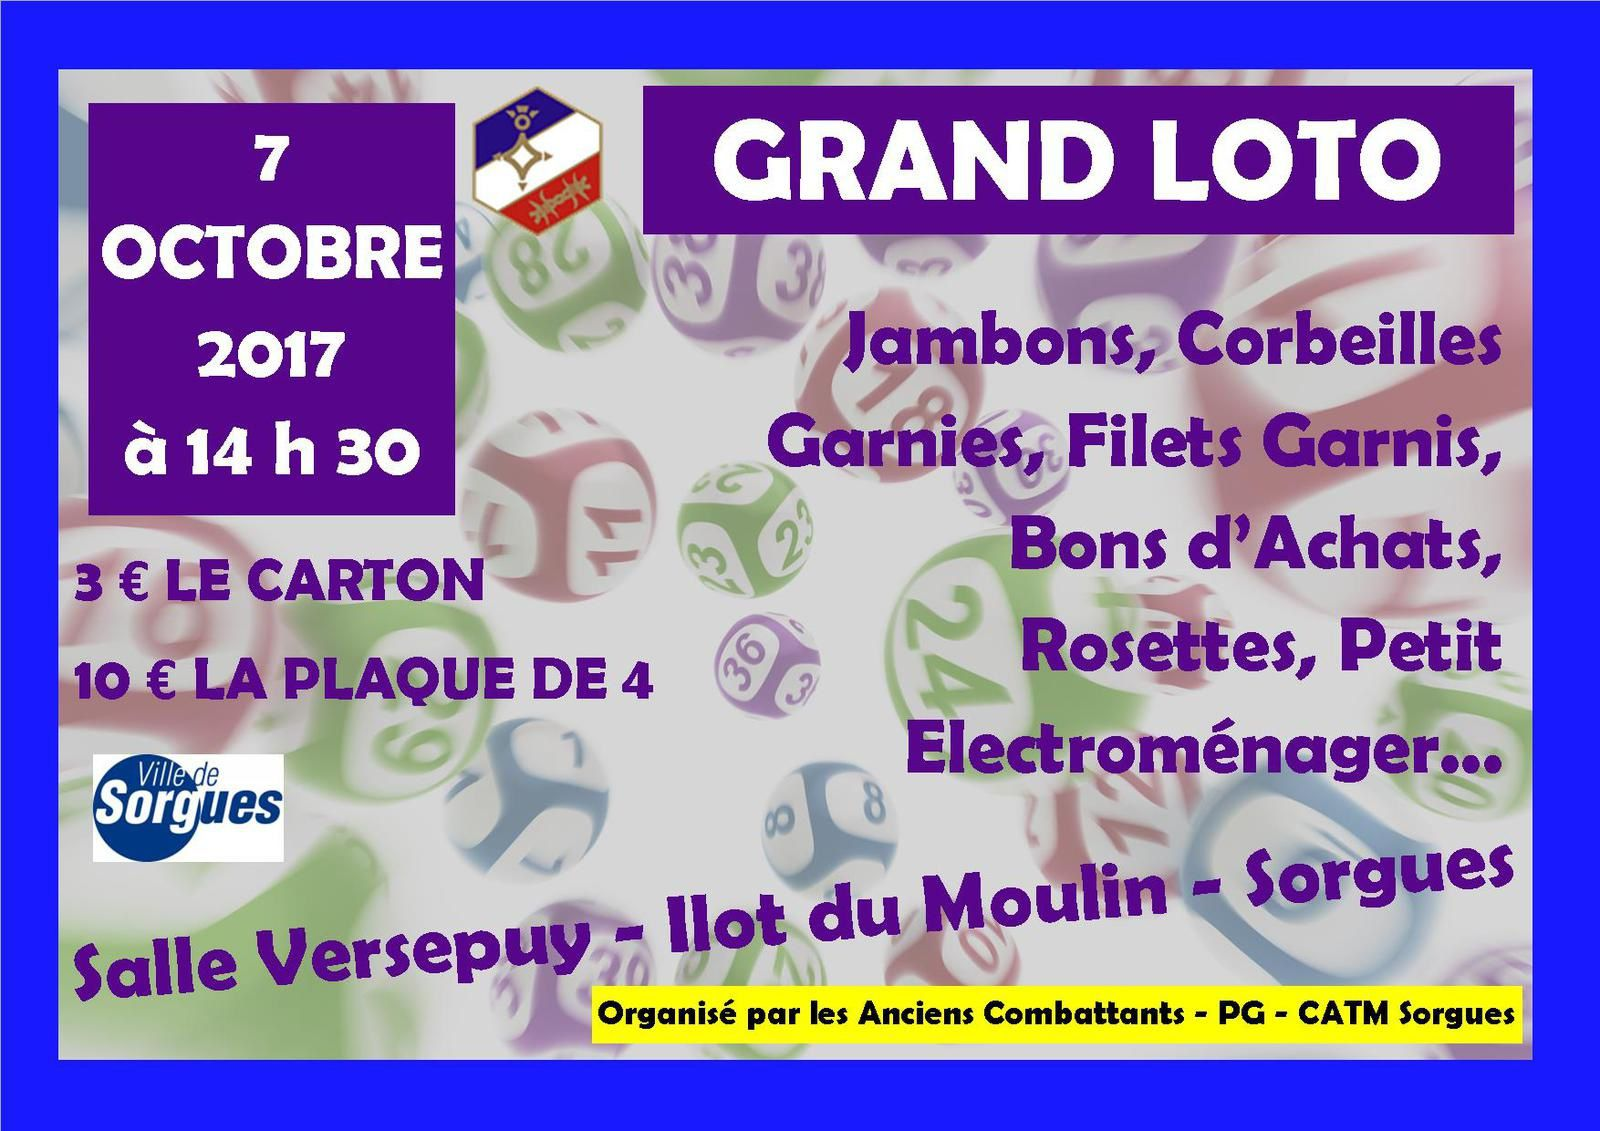 GRAND LOTO DU 7 OCTOBRE 2017